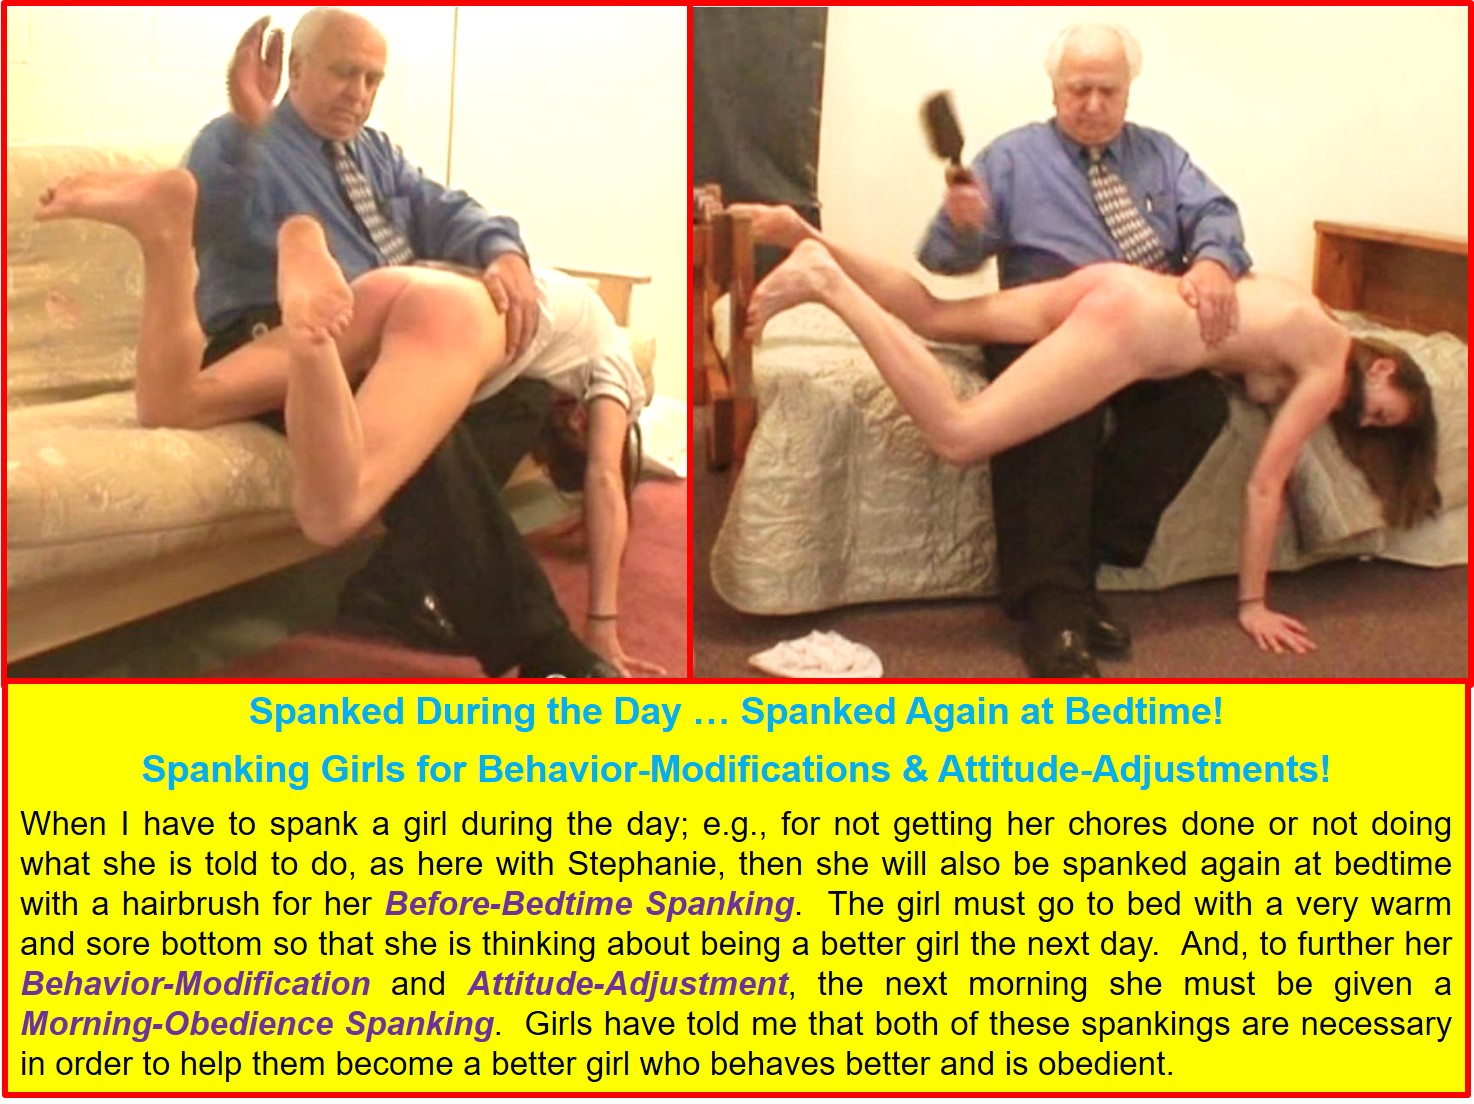 Behavior-Modification and Attitude-Adjustment Spankings